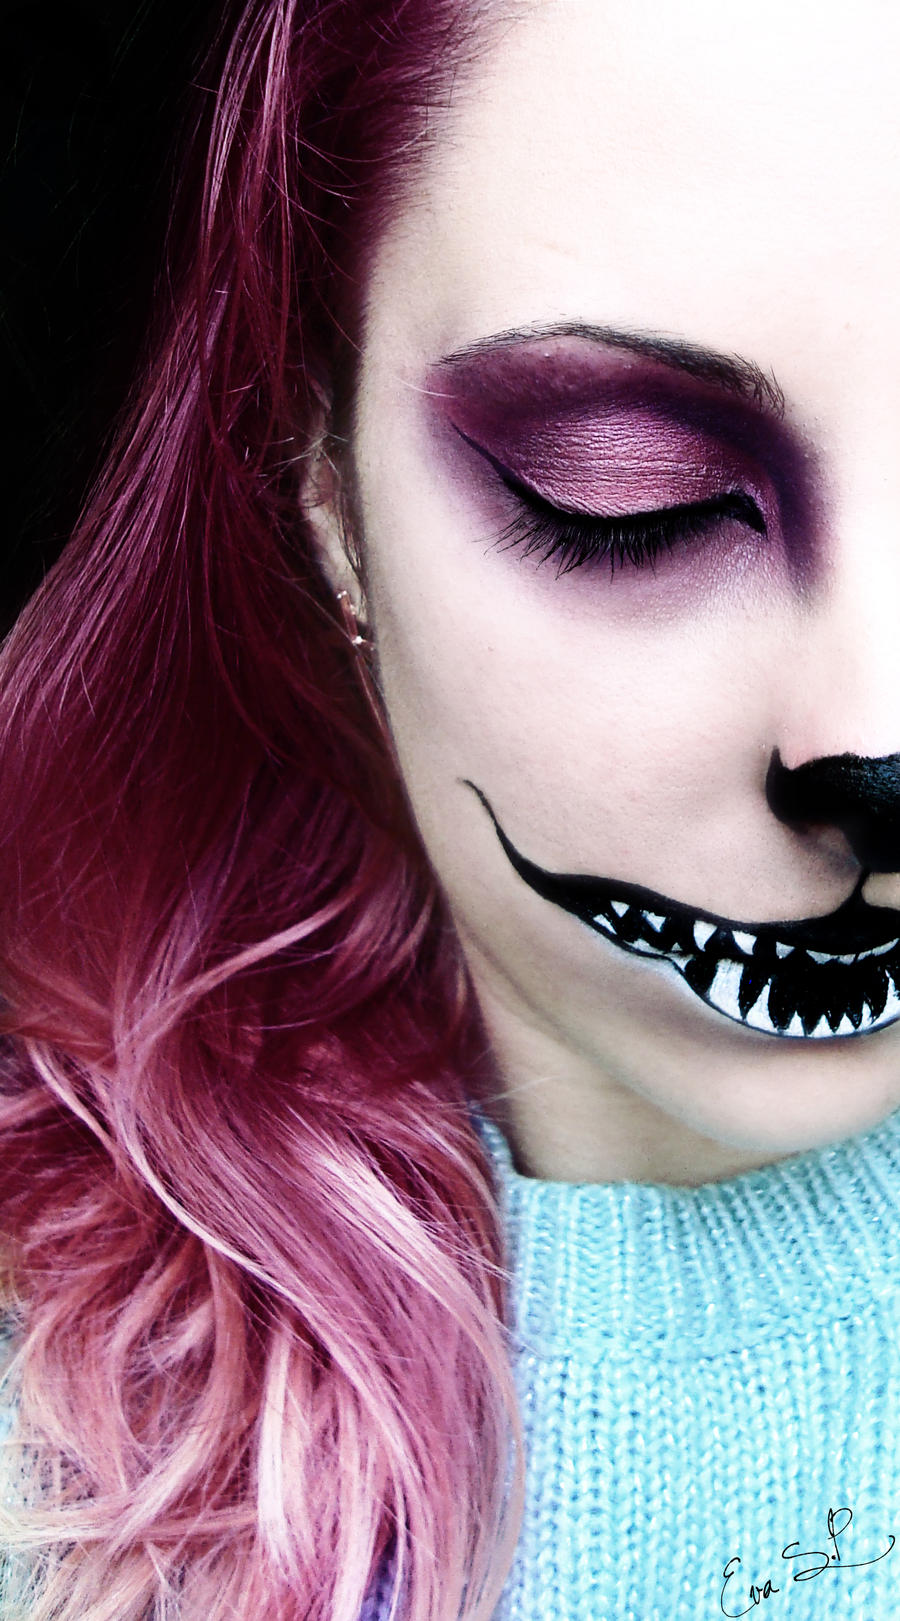 We're all mad here (Chessire Cat Halloween makeup)